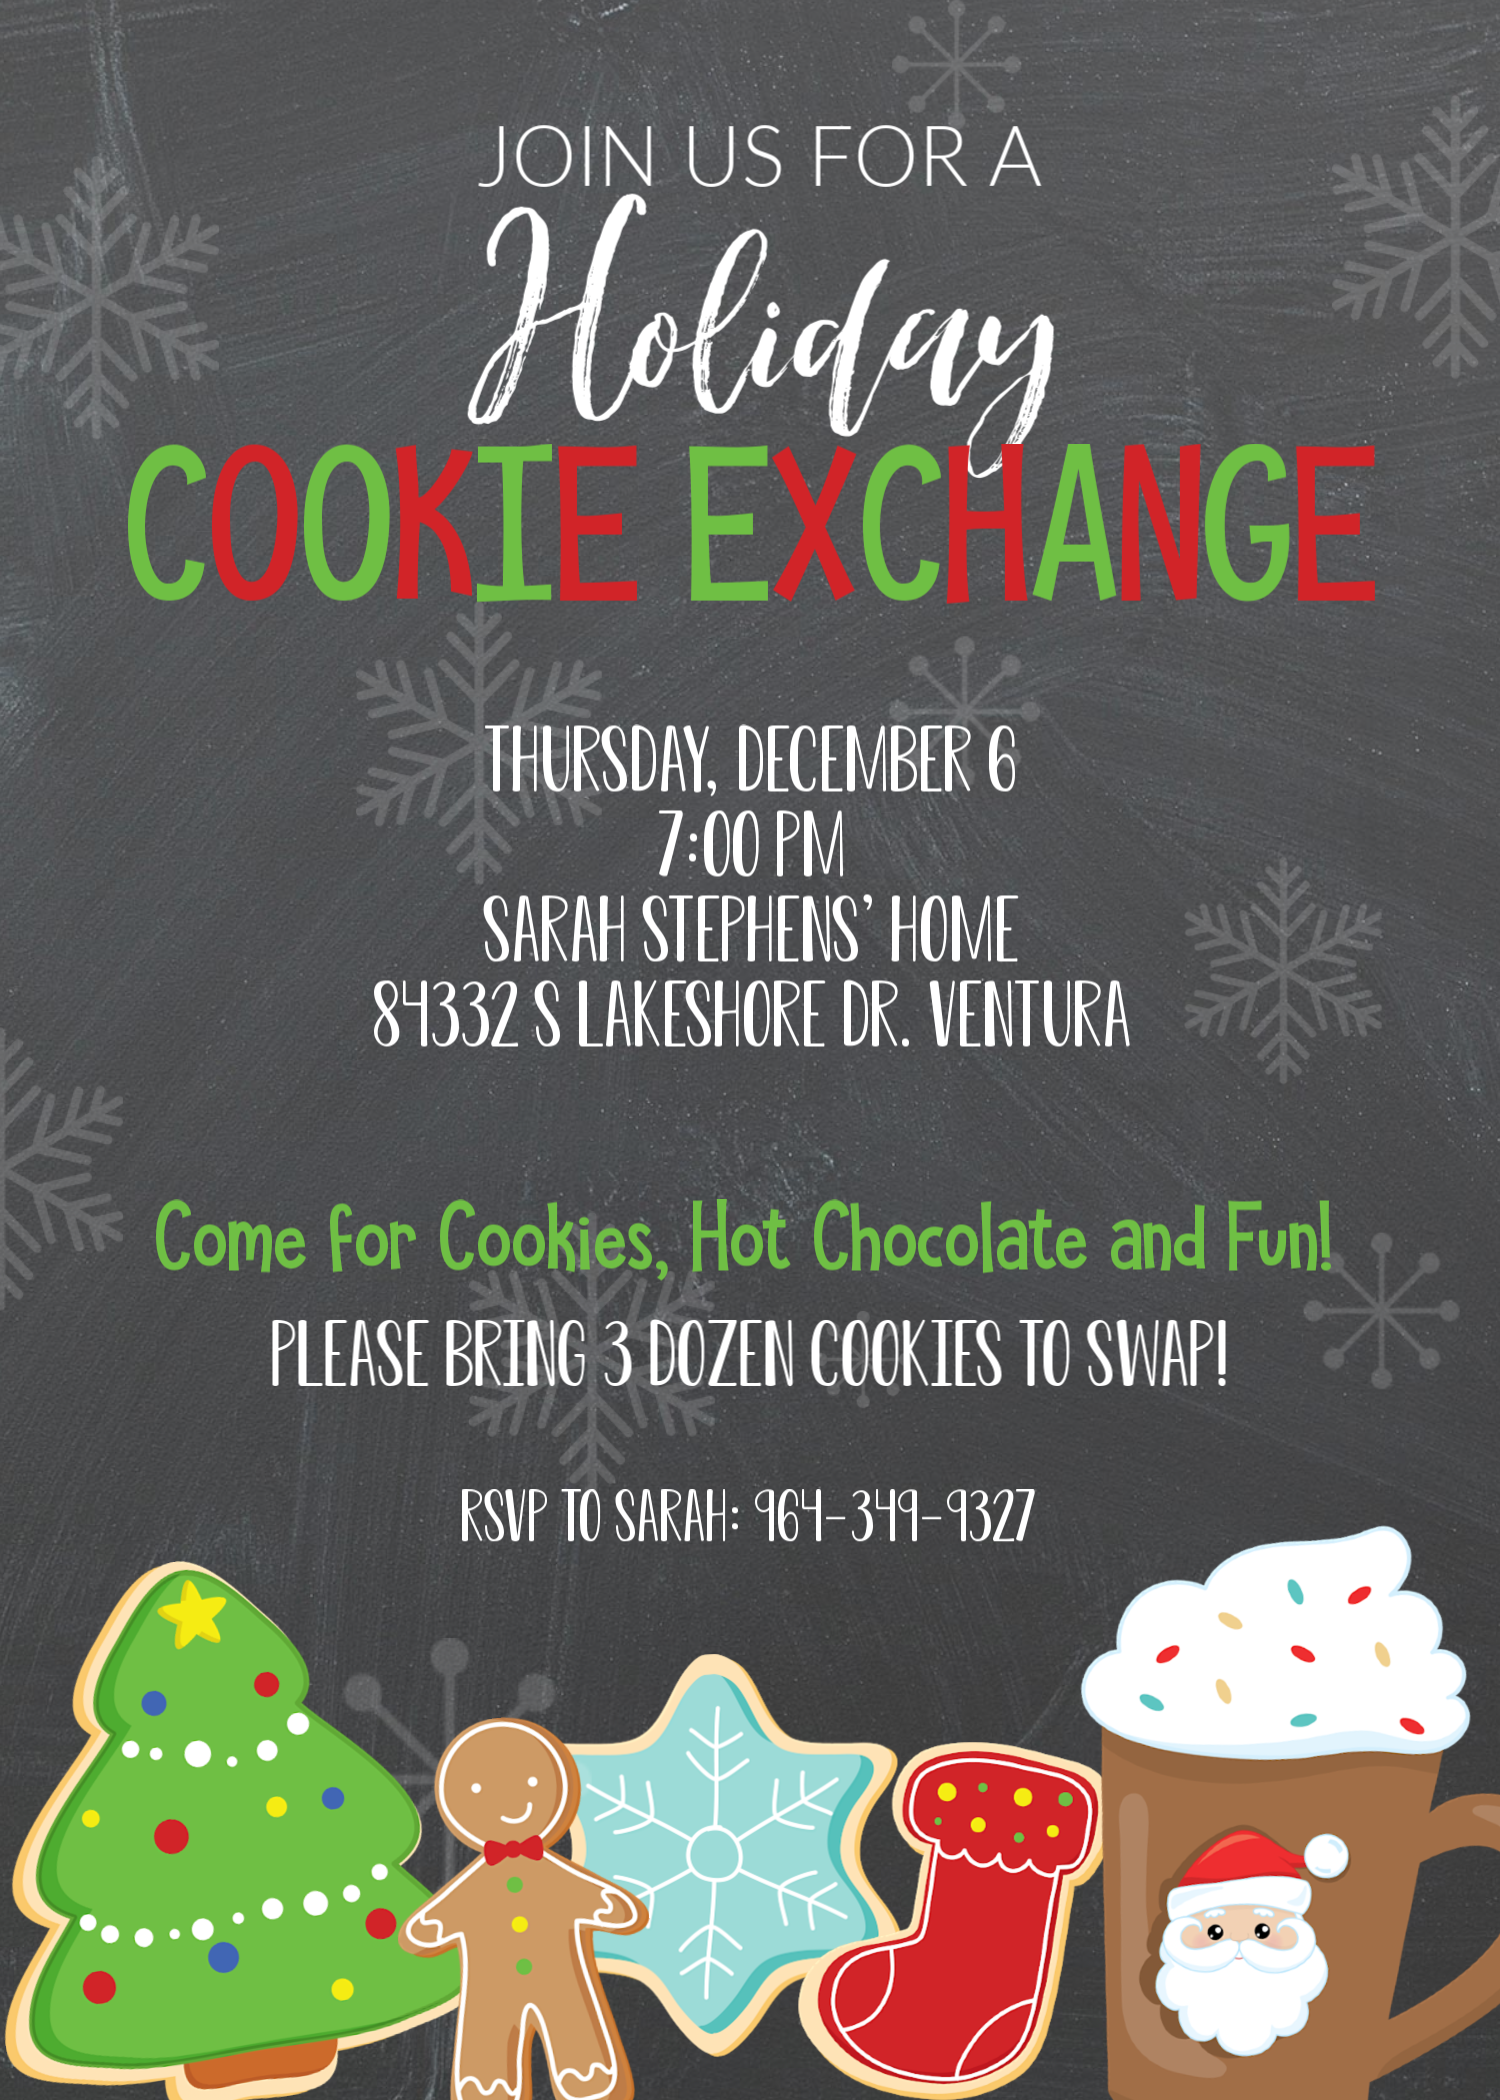 Christmas Cookie Exchange Invitations-Free to Customize and Print! #cookieswap